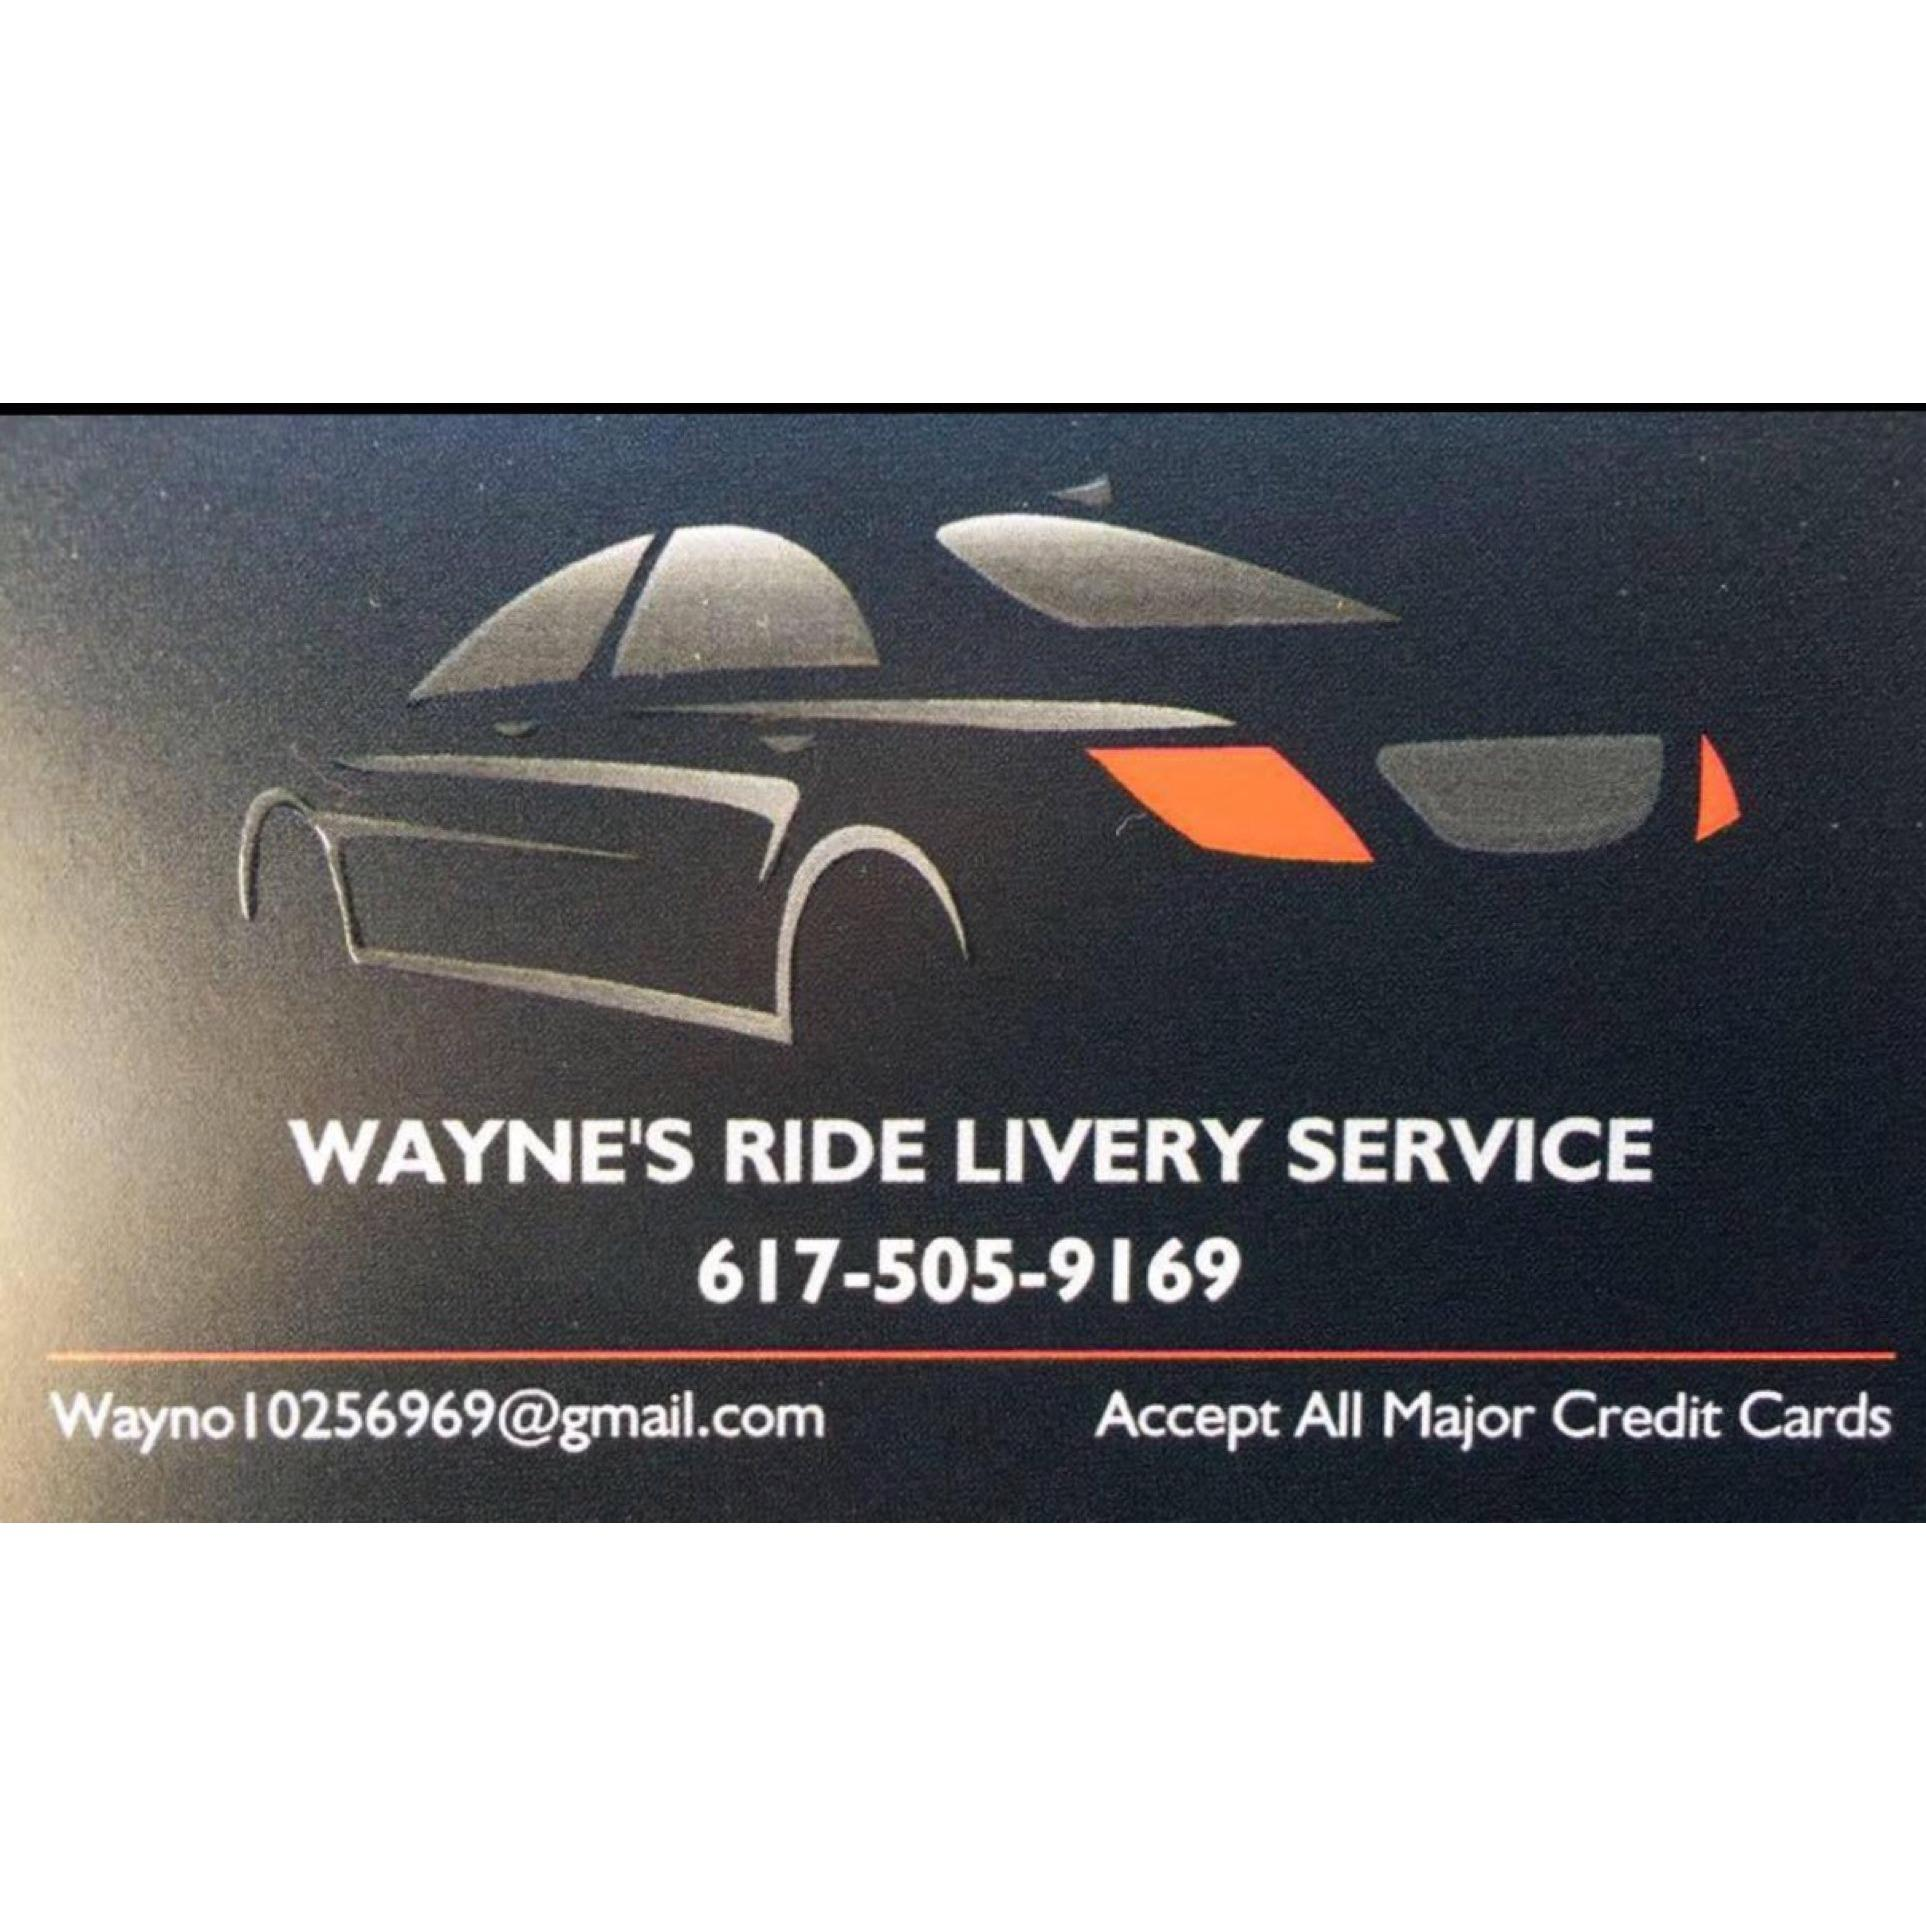 Wayne's Ride Livery Inc.